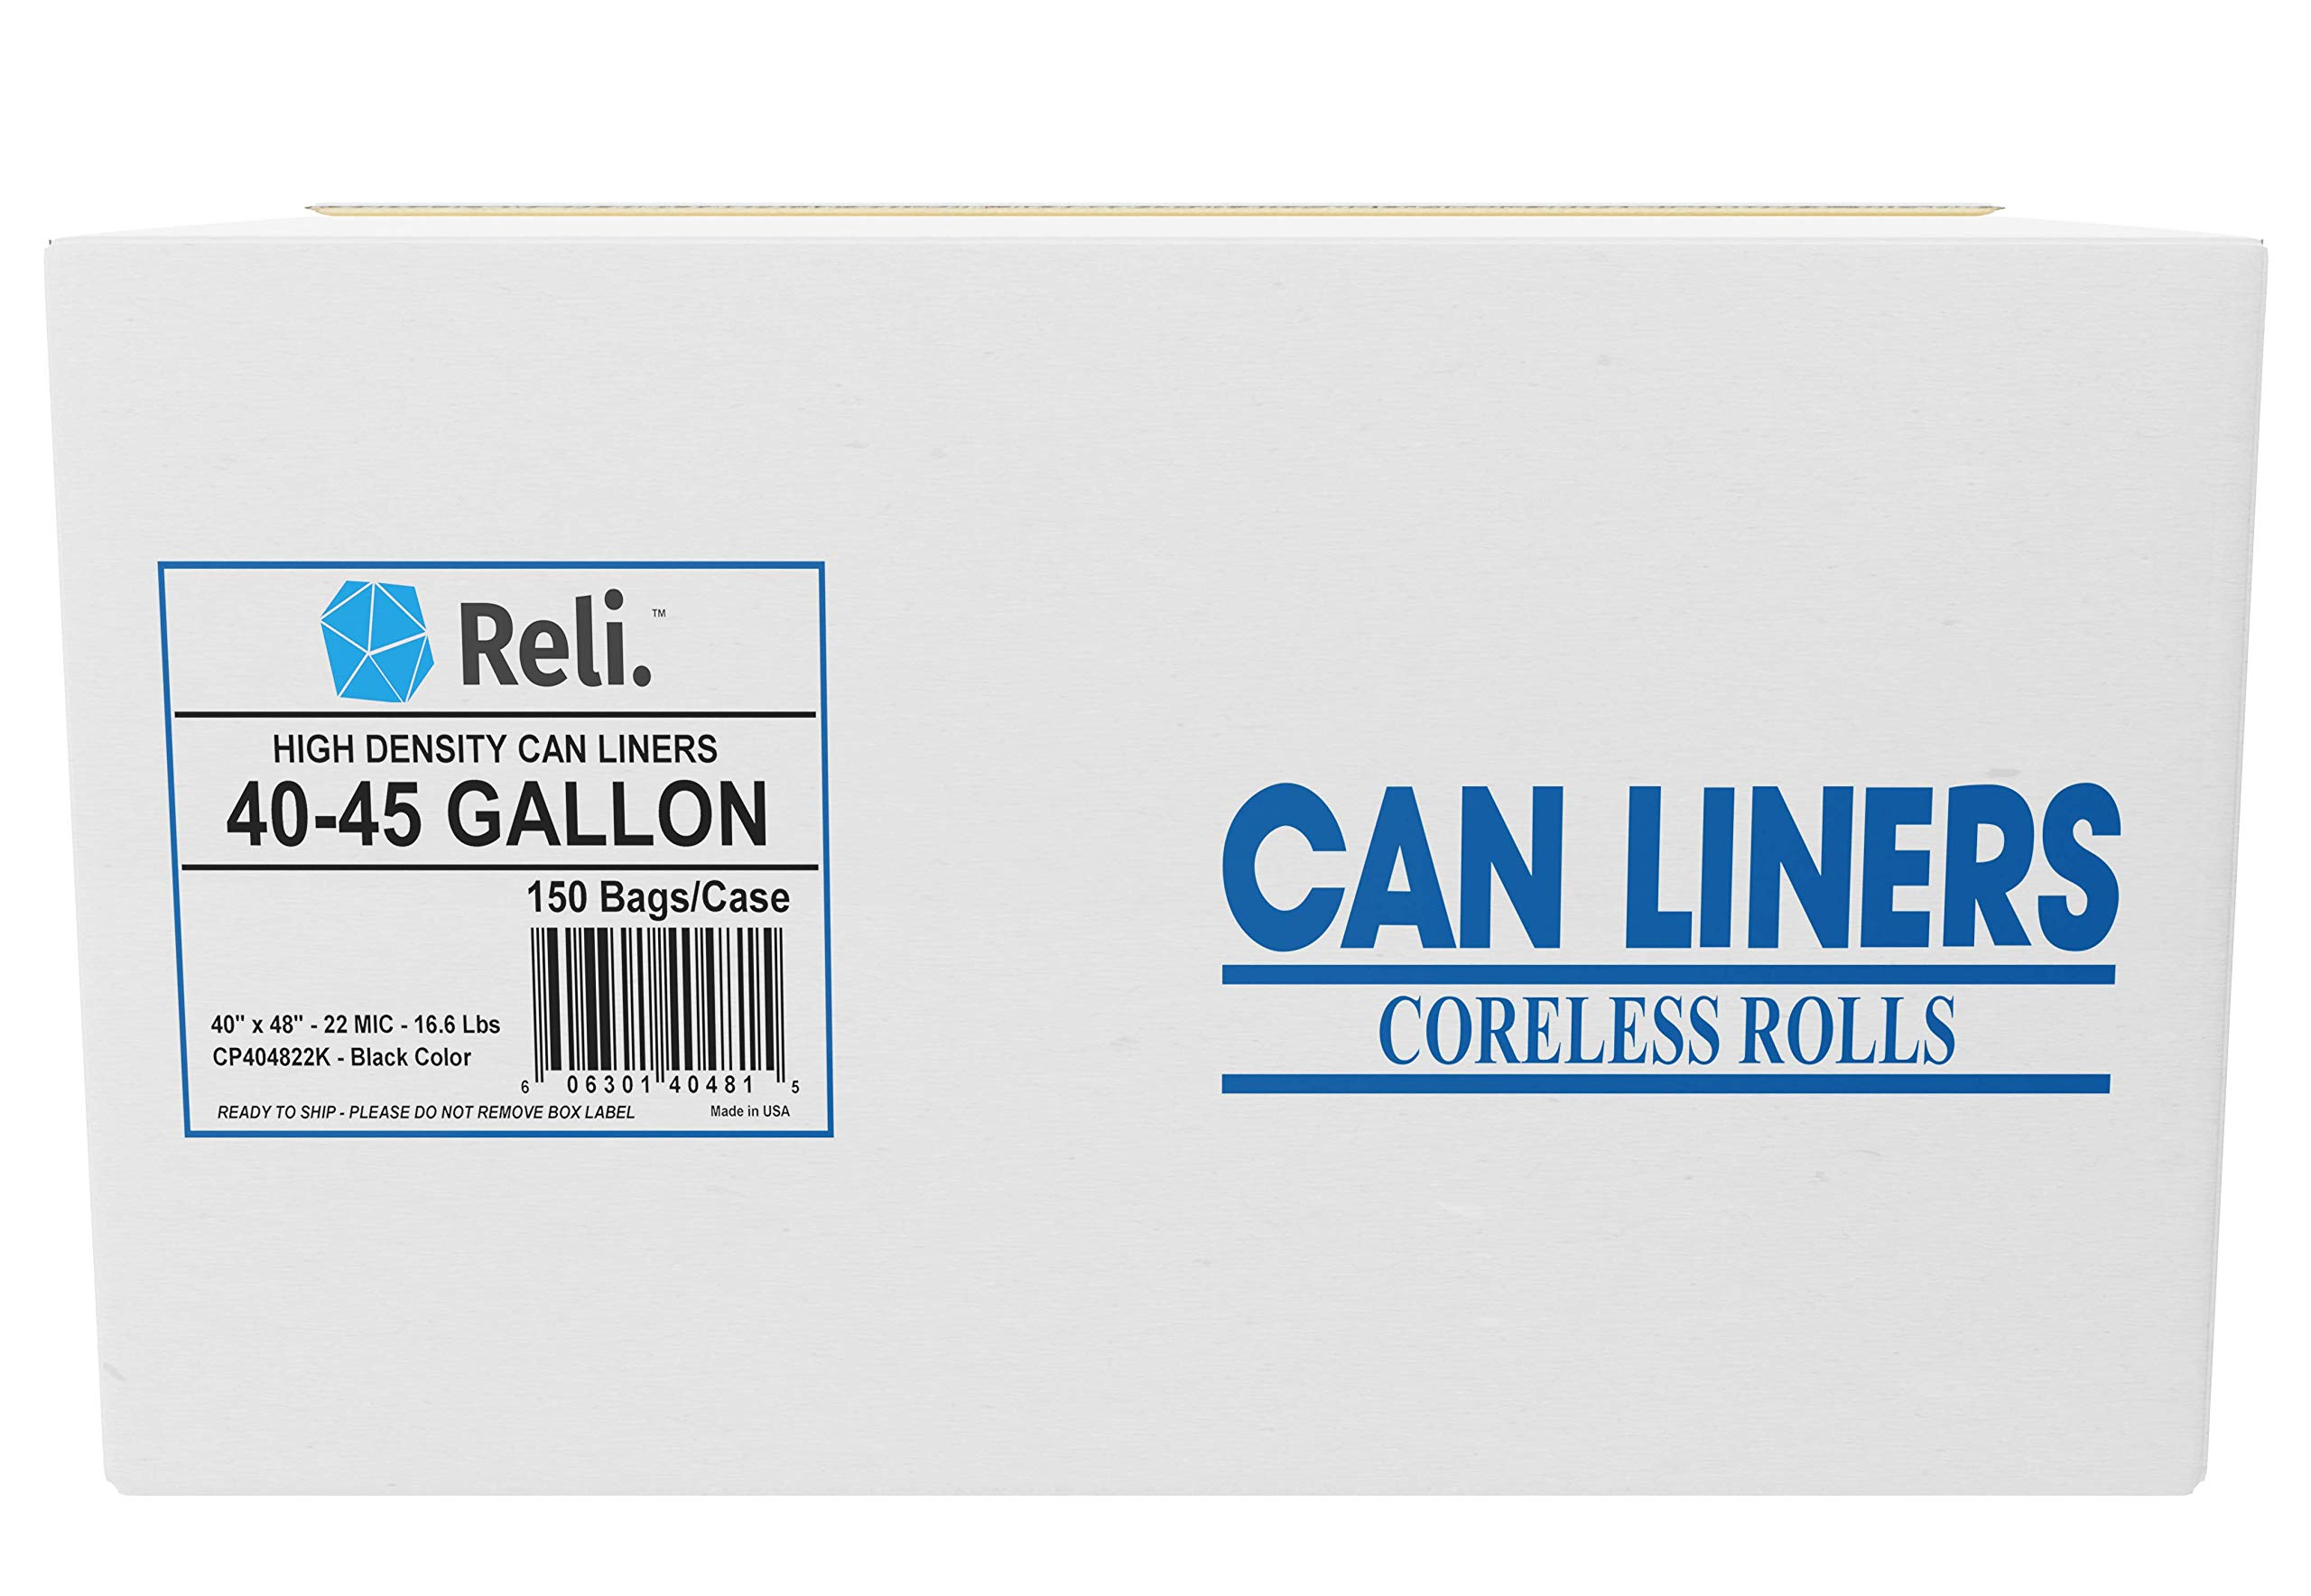 Reli. Premium 40-45 Gallon Trash Bags Heavy Duty, Black (150 Count) Black Garbage Bags 40 Gallon - 45 Gallon, Contractor Bag Strength - Can Liners/Lawn and Leaf Bags 39 Gallon - 45 Gallon by Reli.